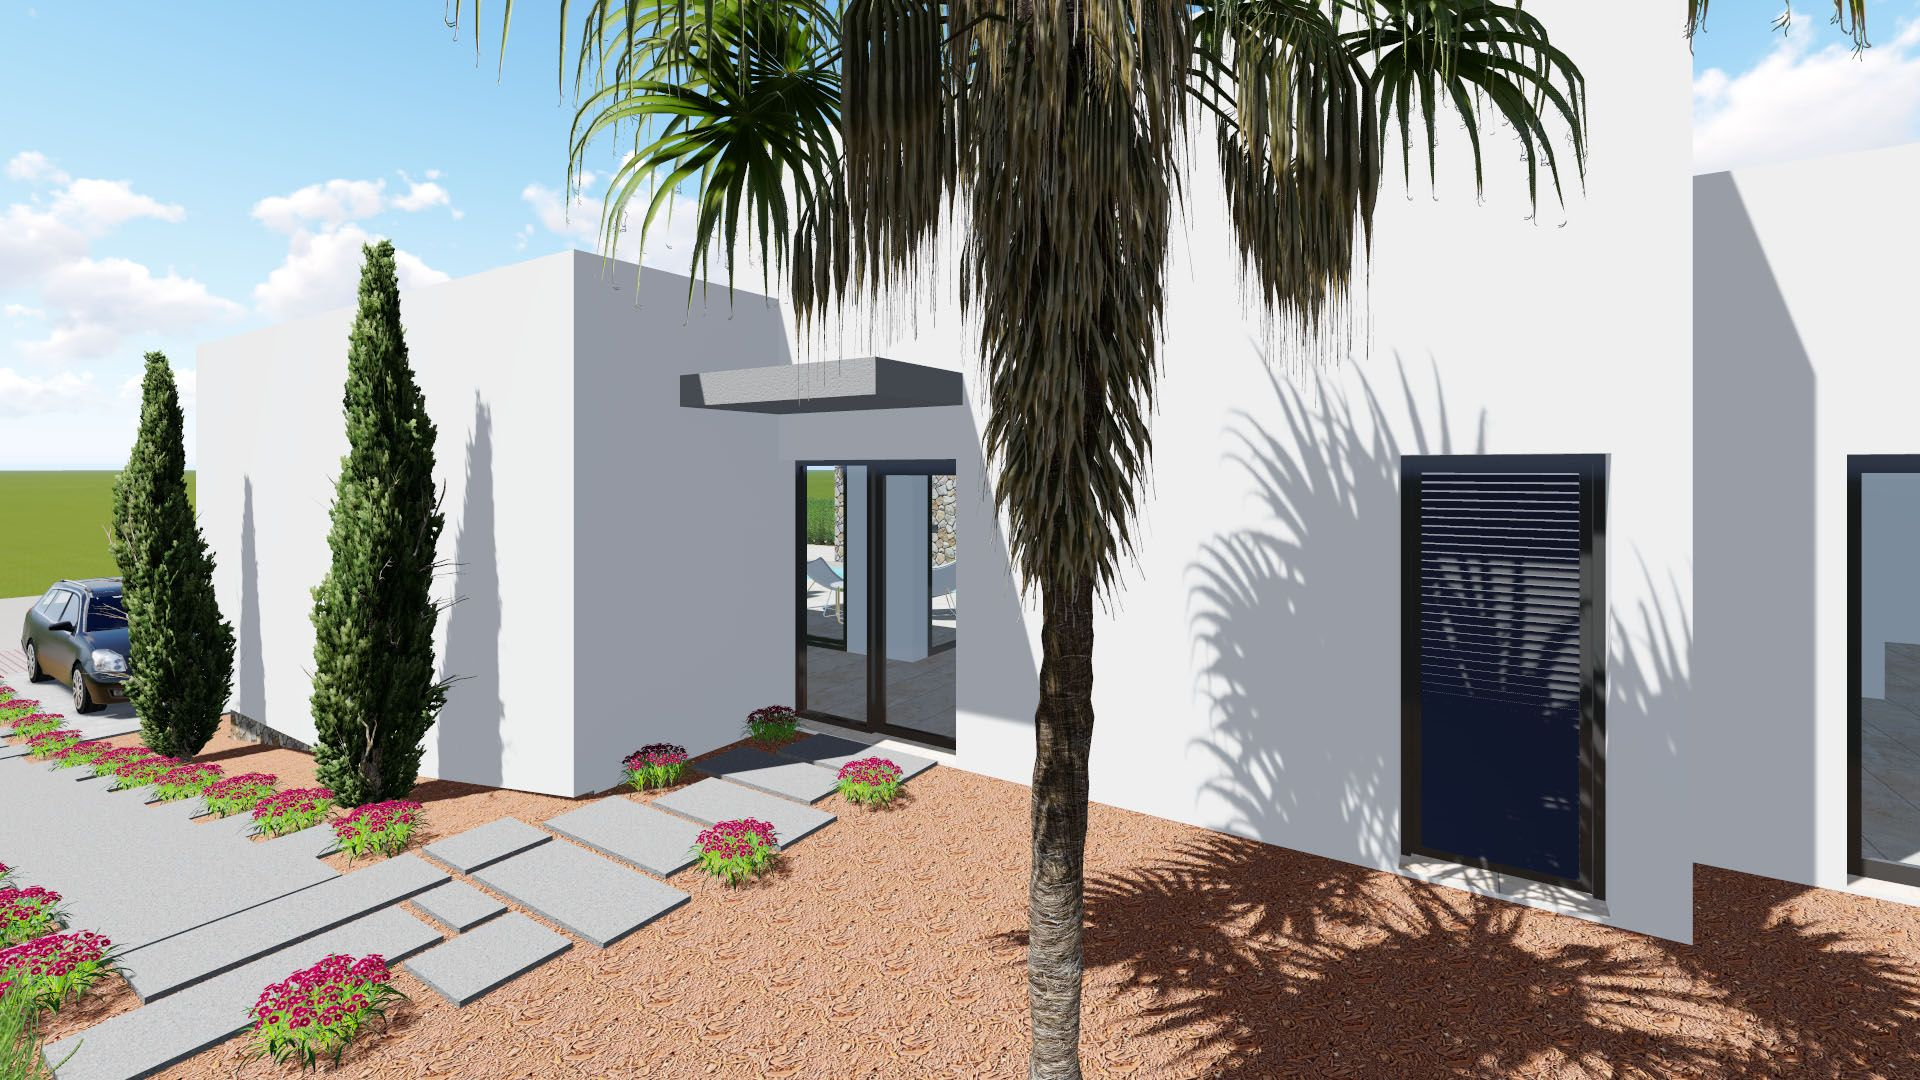 New 3 bedroom detached villa with private pool and garden in Benijófar 6